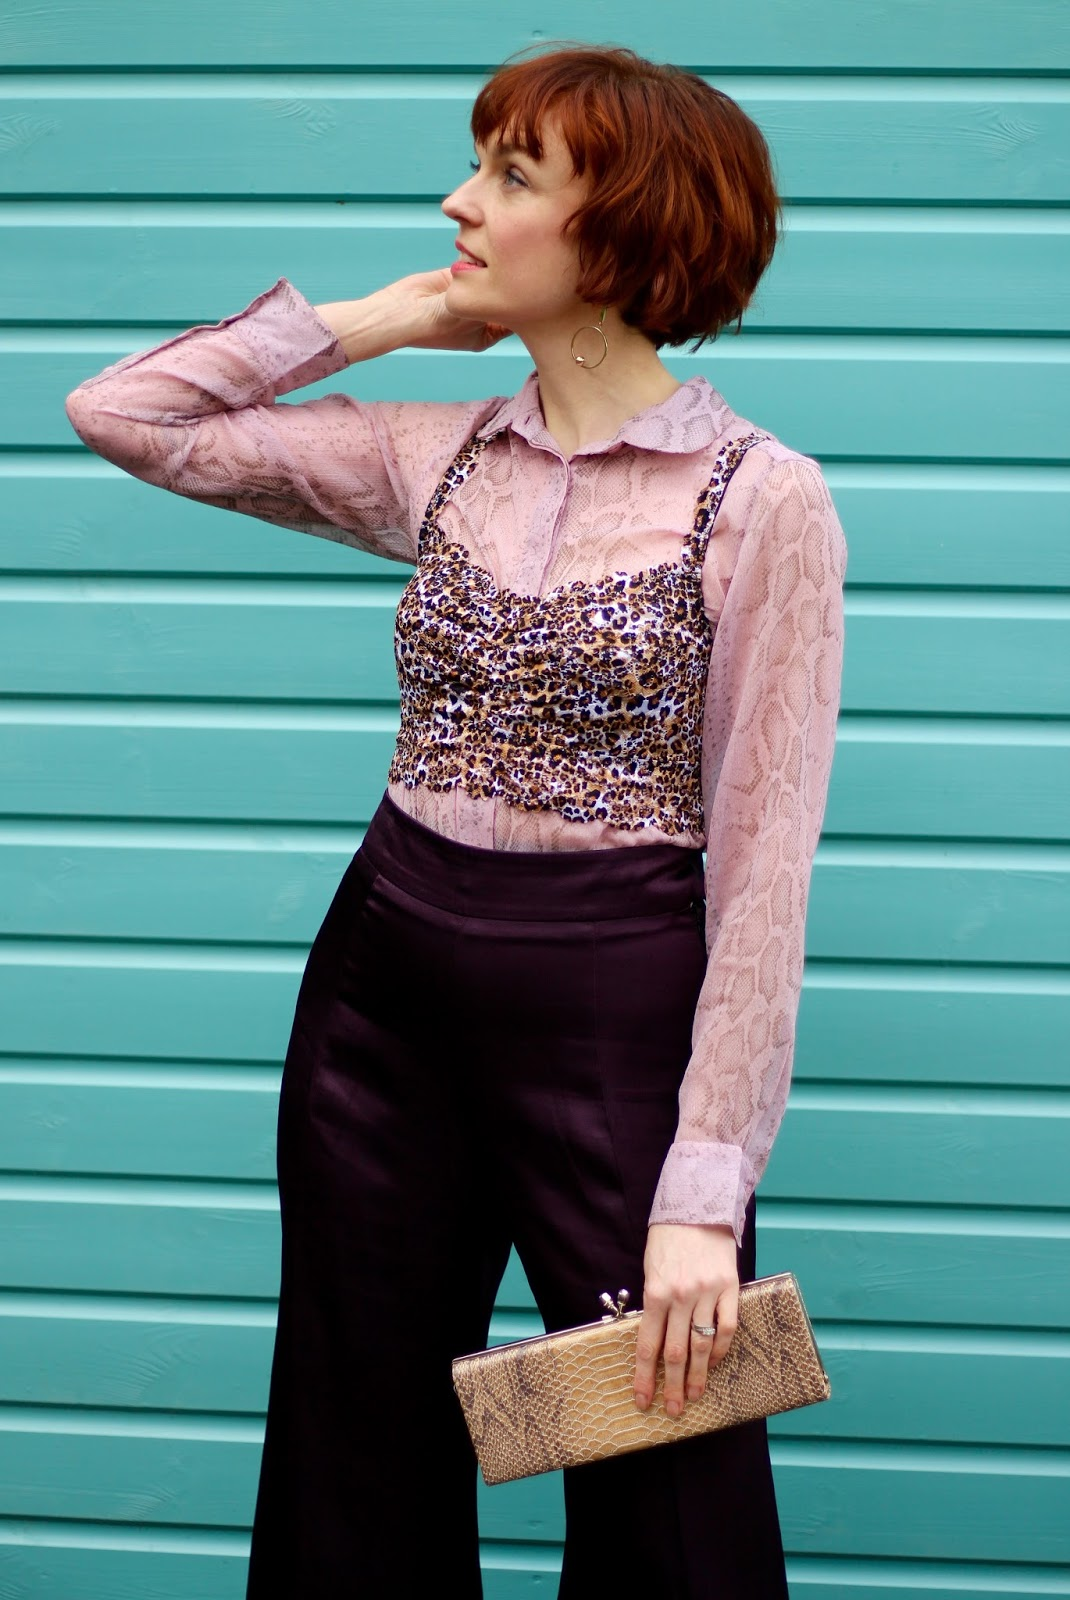 Leopard Lace Bralet over a Chiffon Blouse, Finery Satin trousers | Fake Fabulous